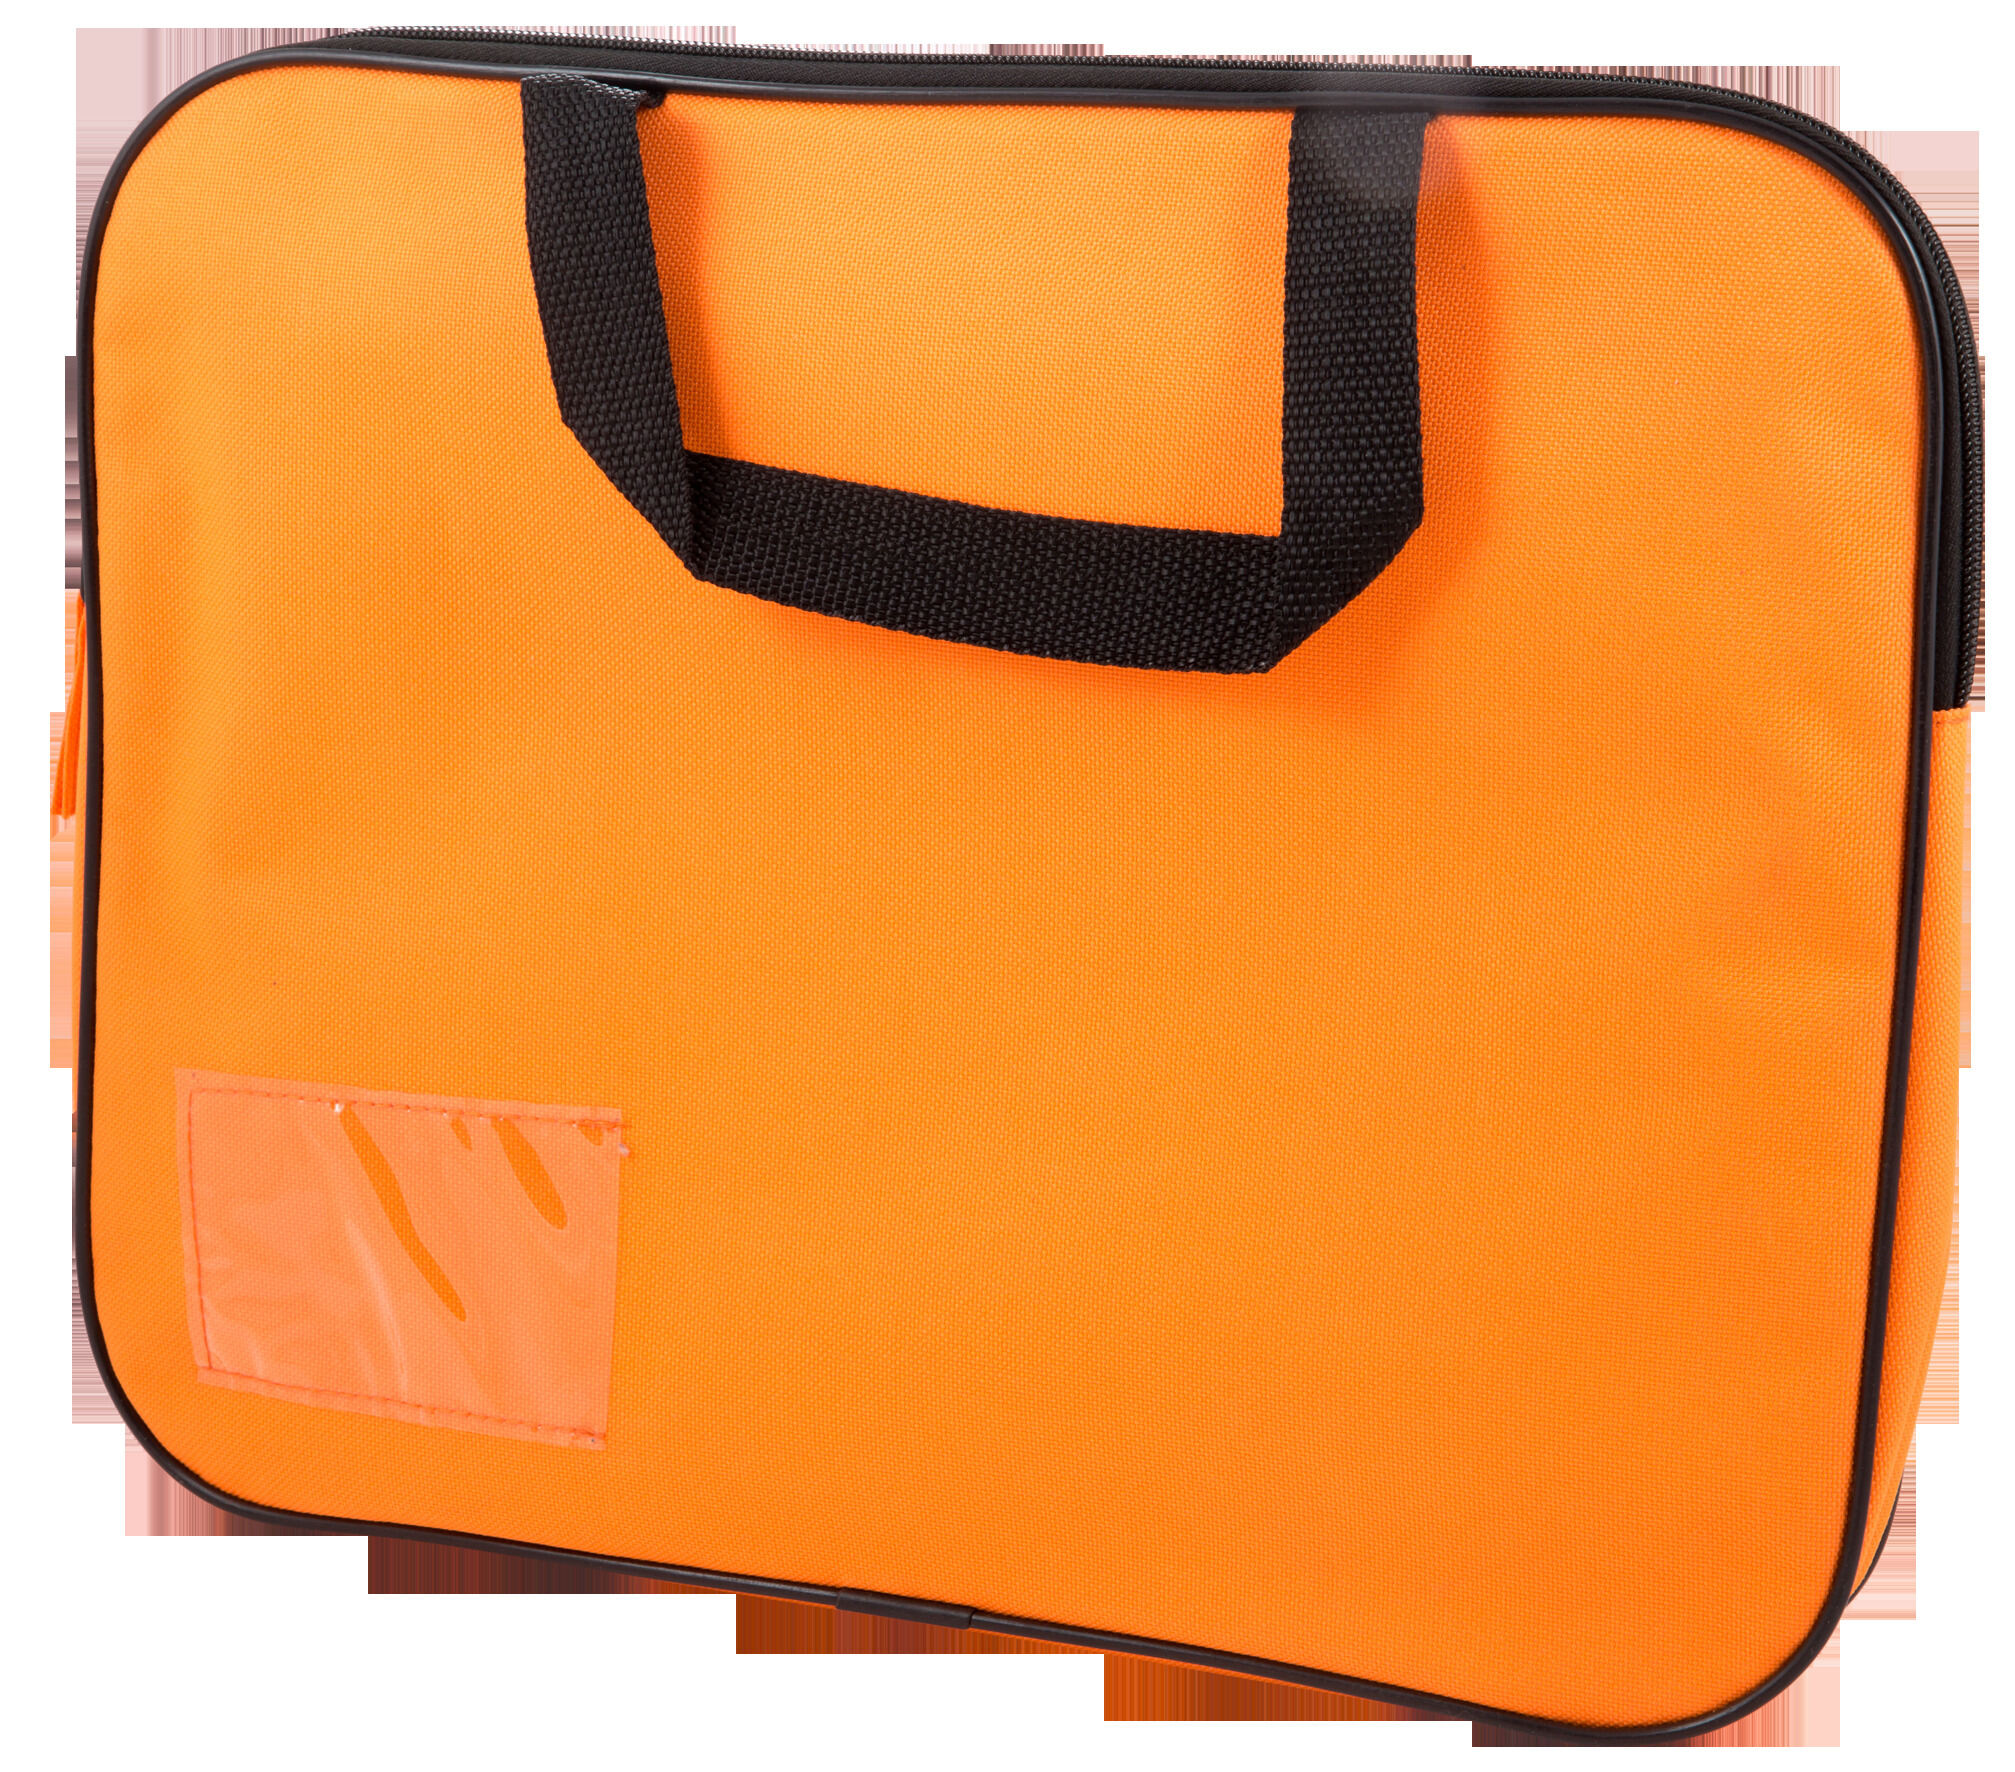 Homework Bag (Book Bag) With Handle - Orange